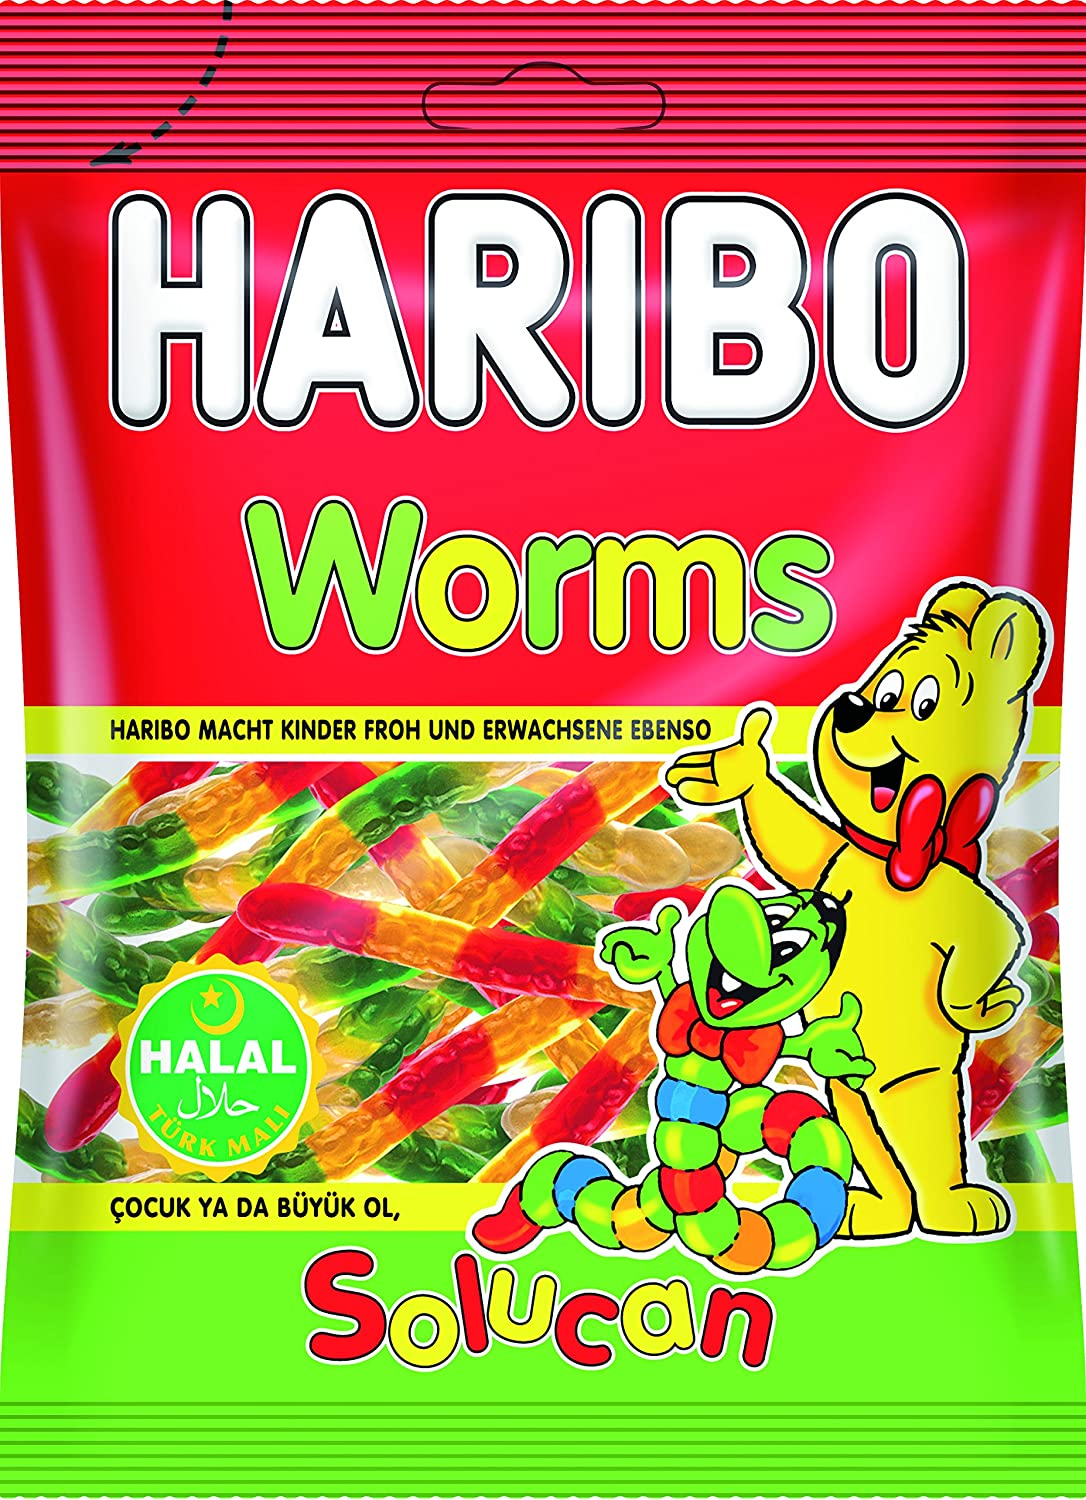 Haribo Worms (Halal)